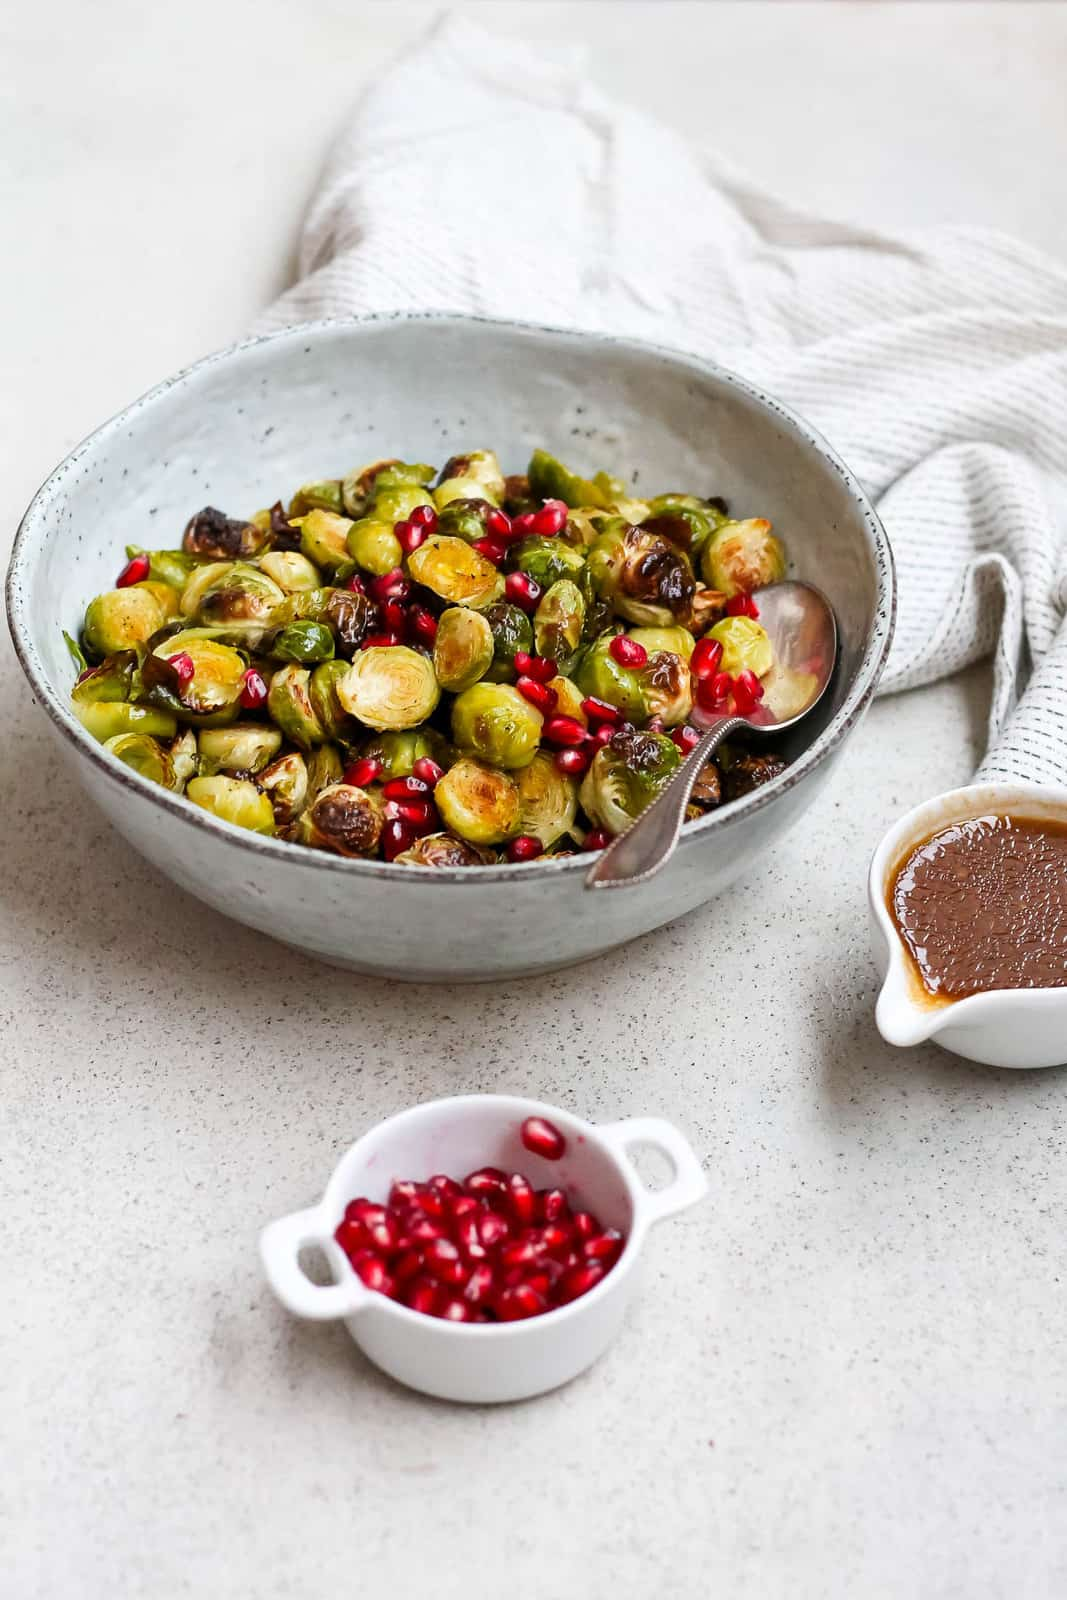 a blue bowl of roasted brussels sprouts with a white dish of pomegranate seeds in the front